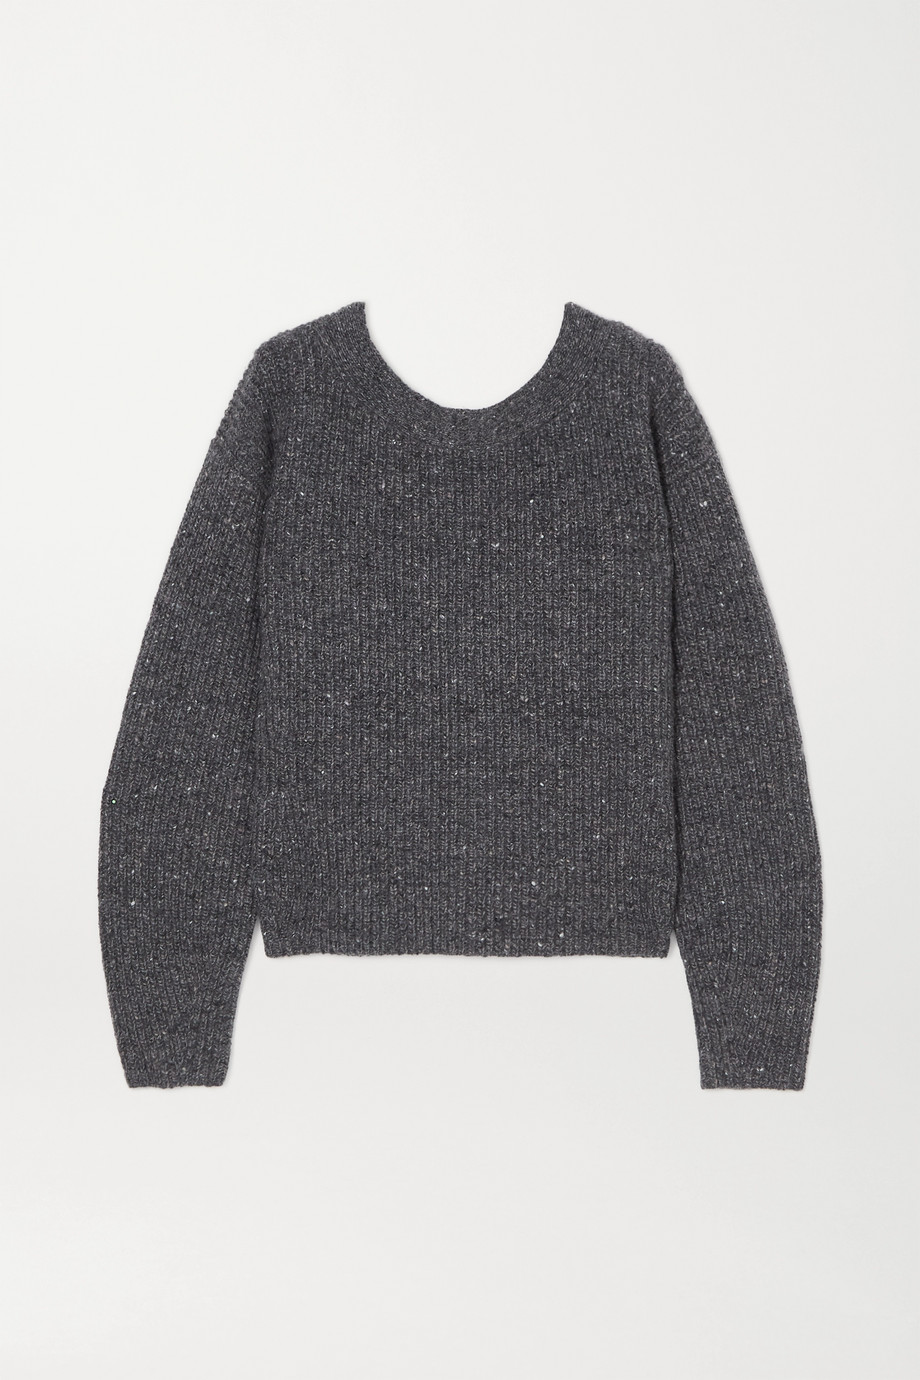 Altuzarra Beverly ribbed wool and cashmere-blend sweater